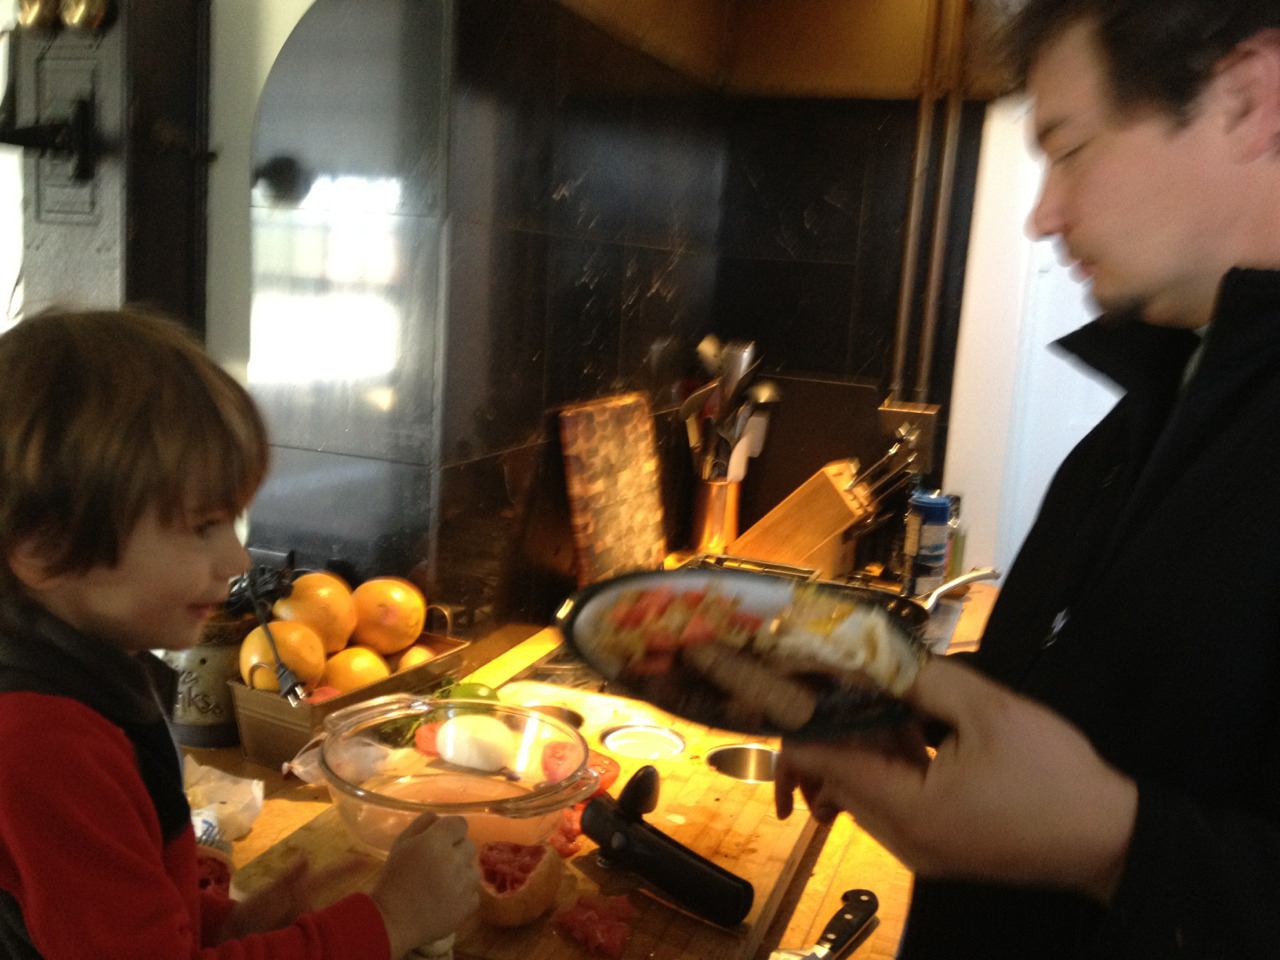 Sunday morning cooking breakfast at our own stove.  Love these mornings. Our family is very blessed. We get to spend such great times together. It's simple, but, this morning is one of those times.